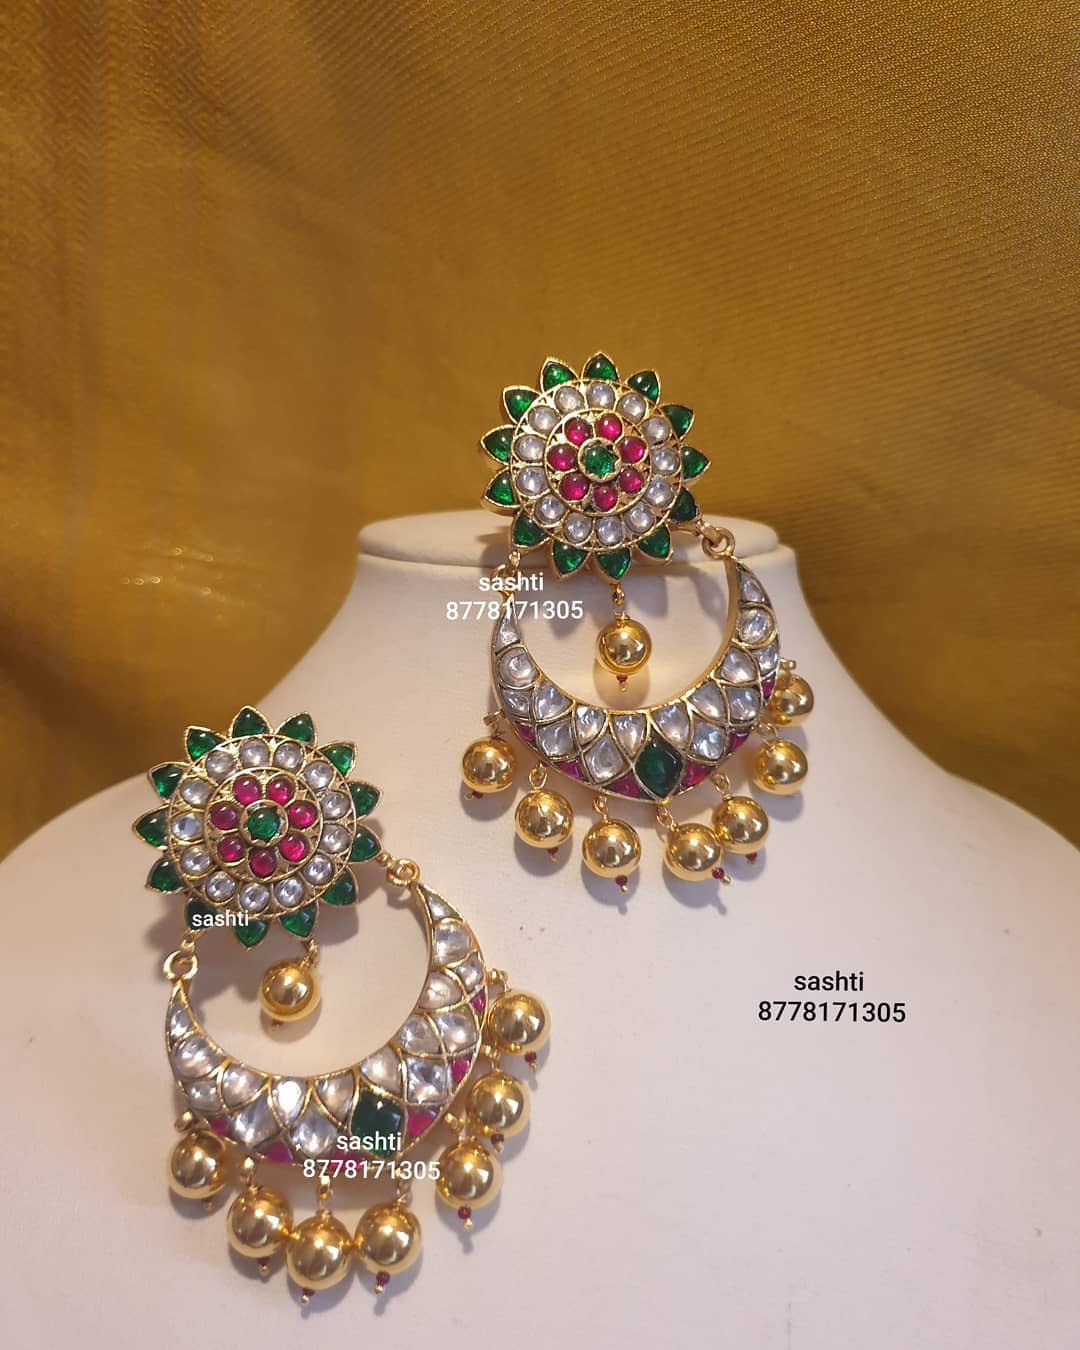 Gorgeous silver chaandbali studded with emeralds and rubies. Chaandbali with gold poolish. 2021-01-10